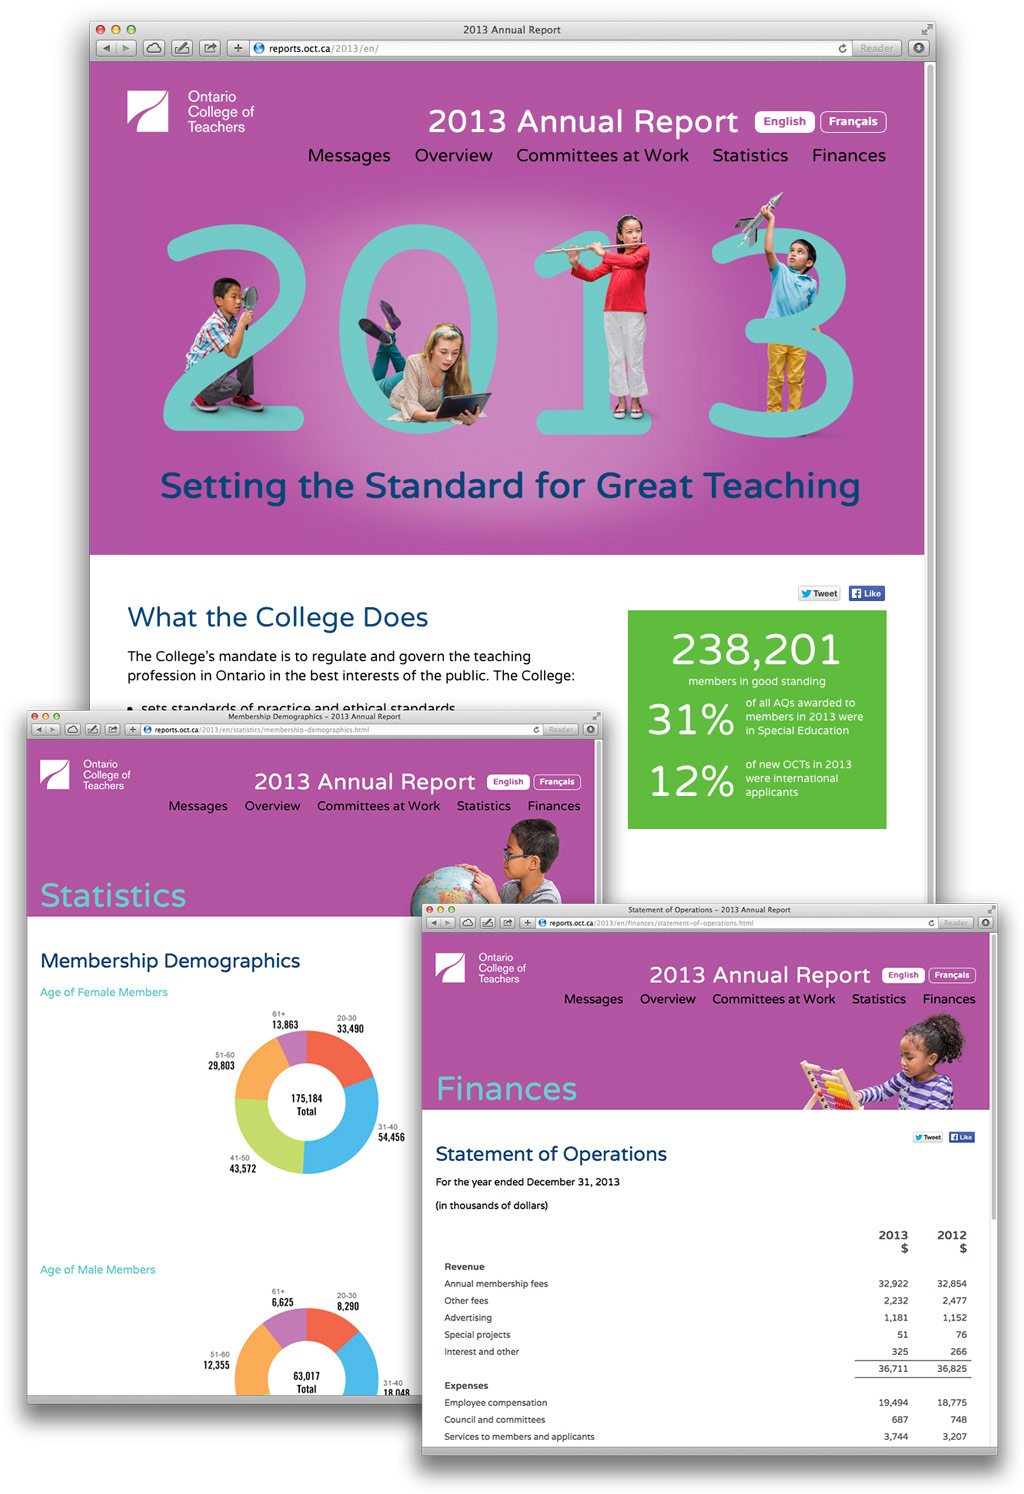 Annual Report for the Ontario College of Teachers